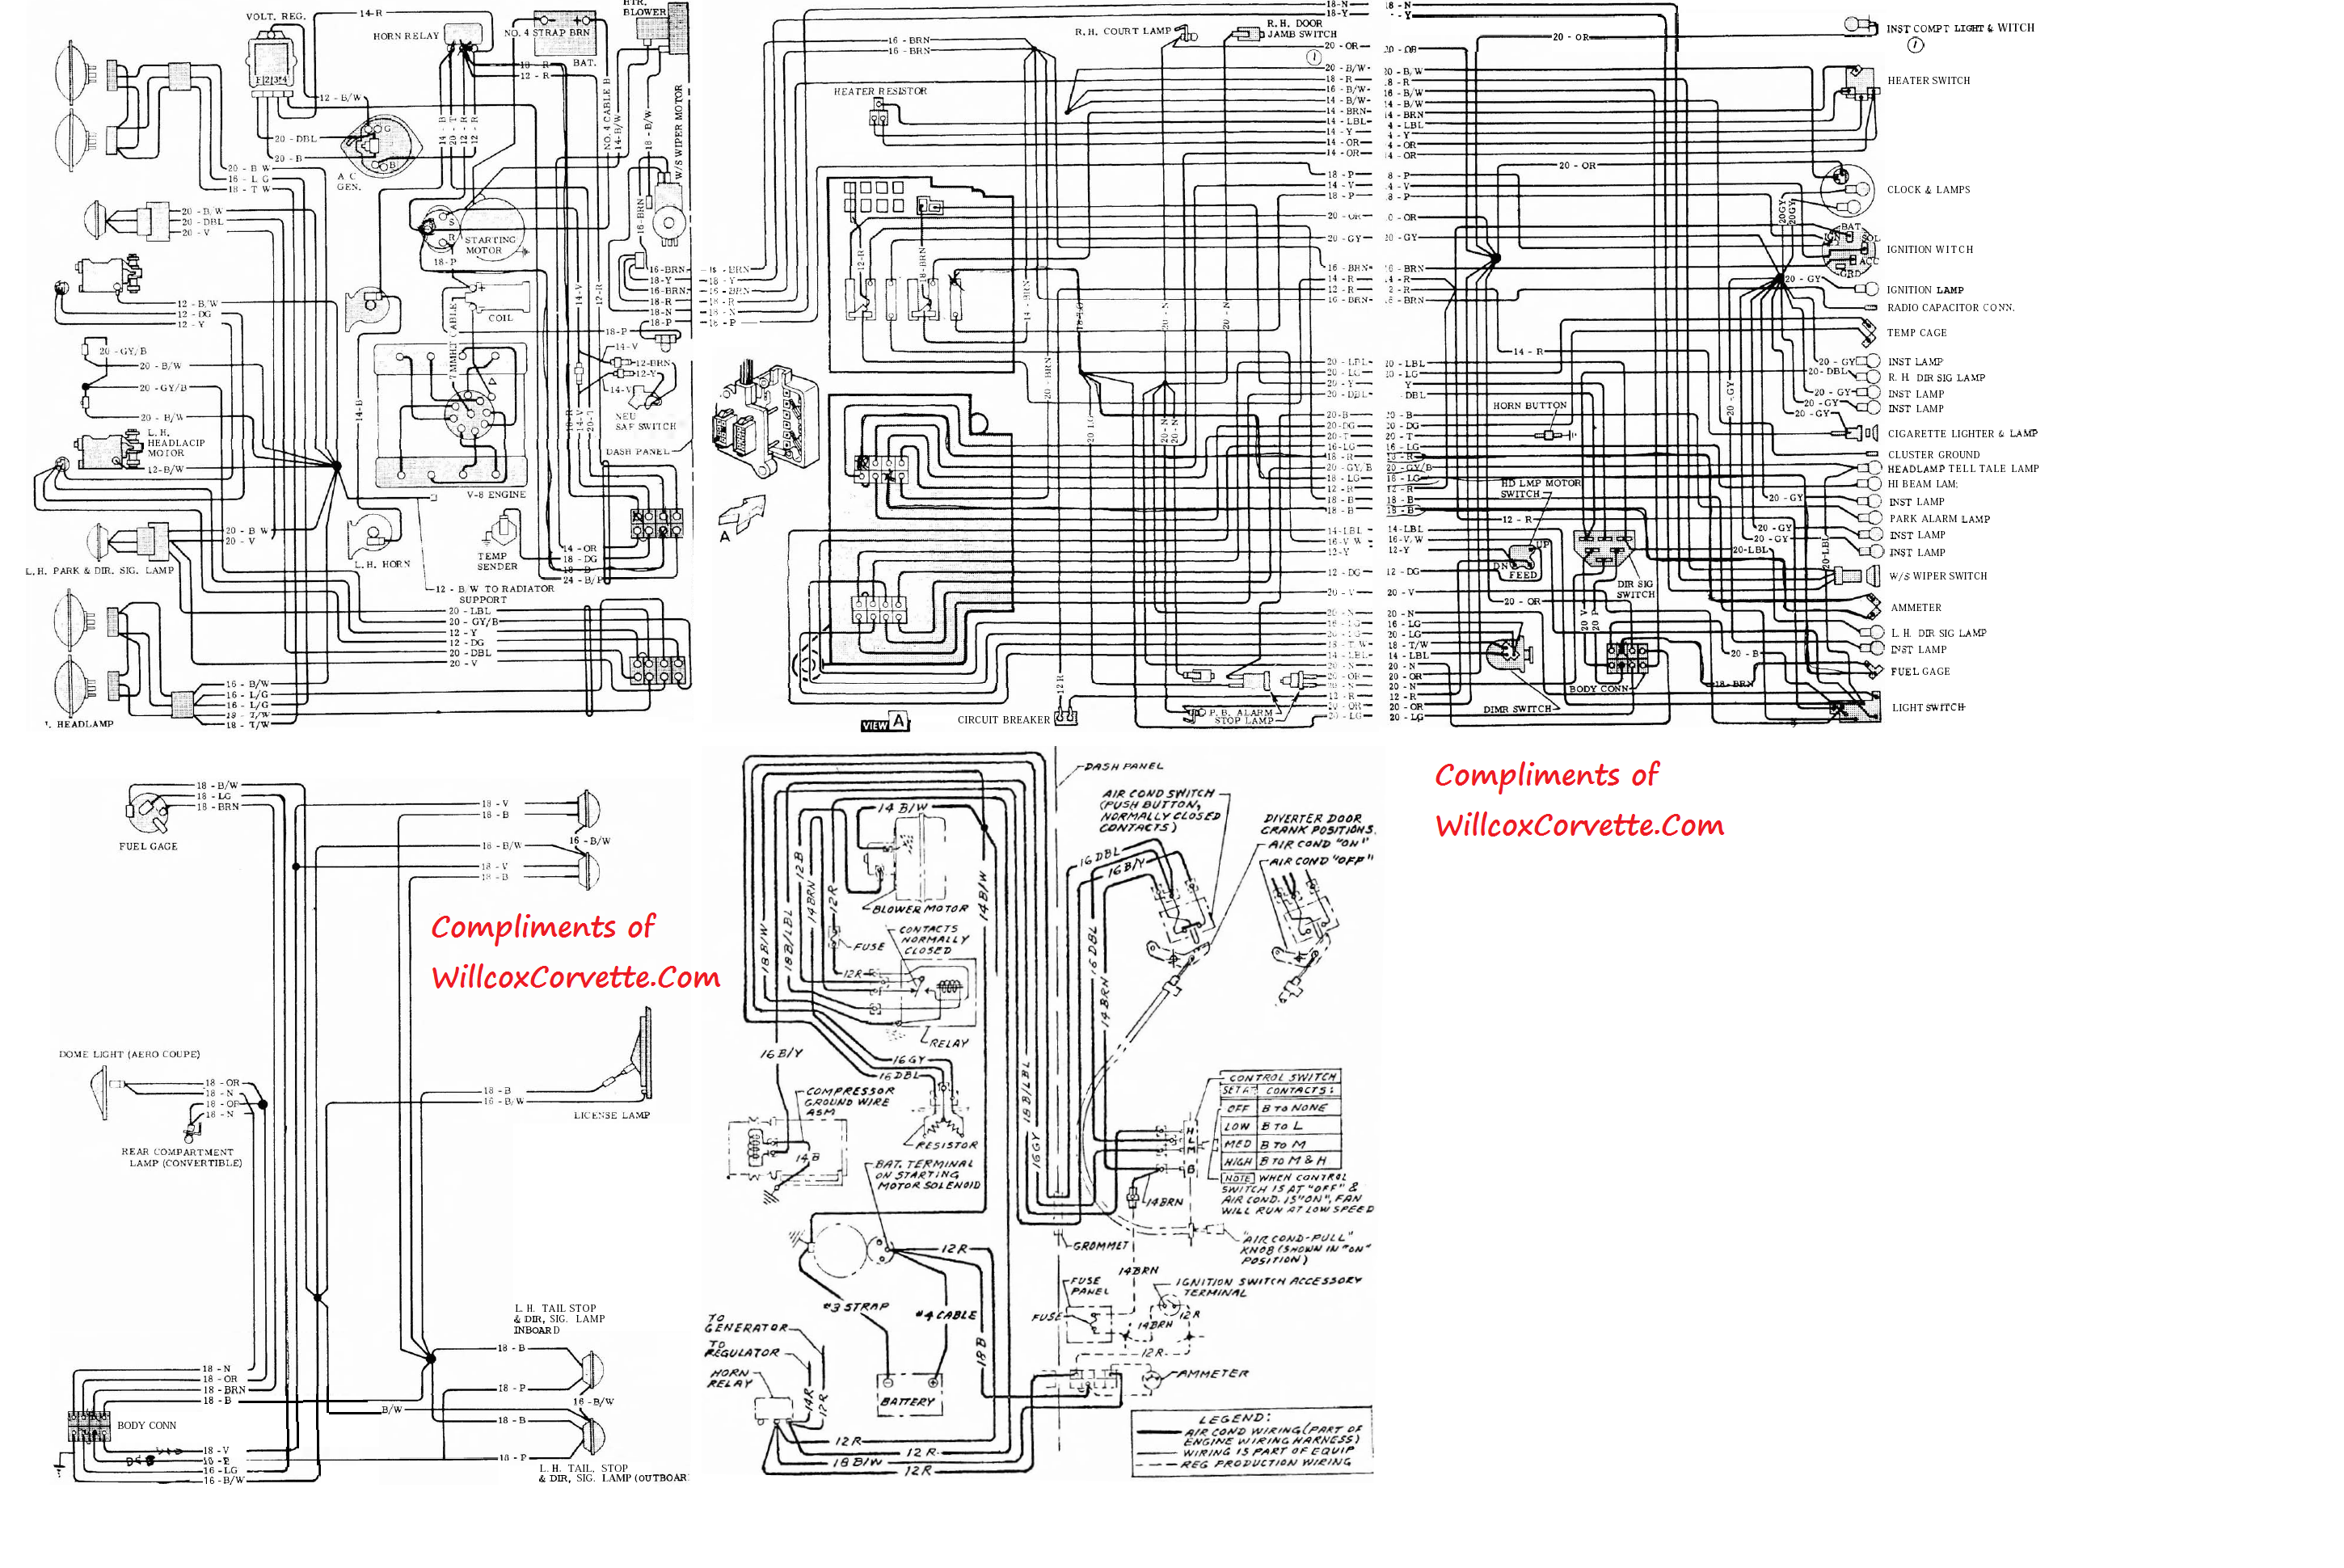 1963 Corvette Tracer Wiring Diagram Tracer Schematic 1980 corvette wiring diagram 1980 corvette wiring diagram at crackthecode.co